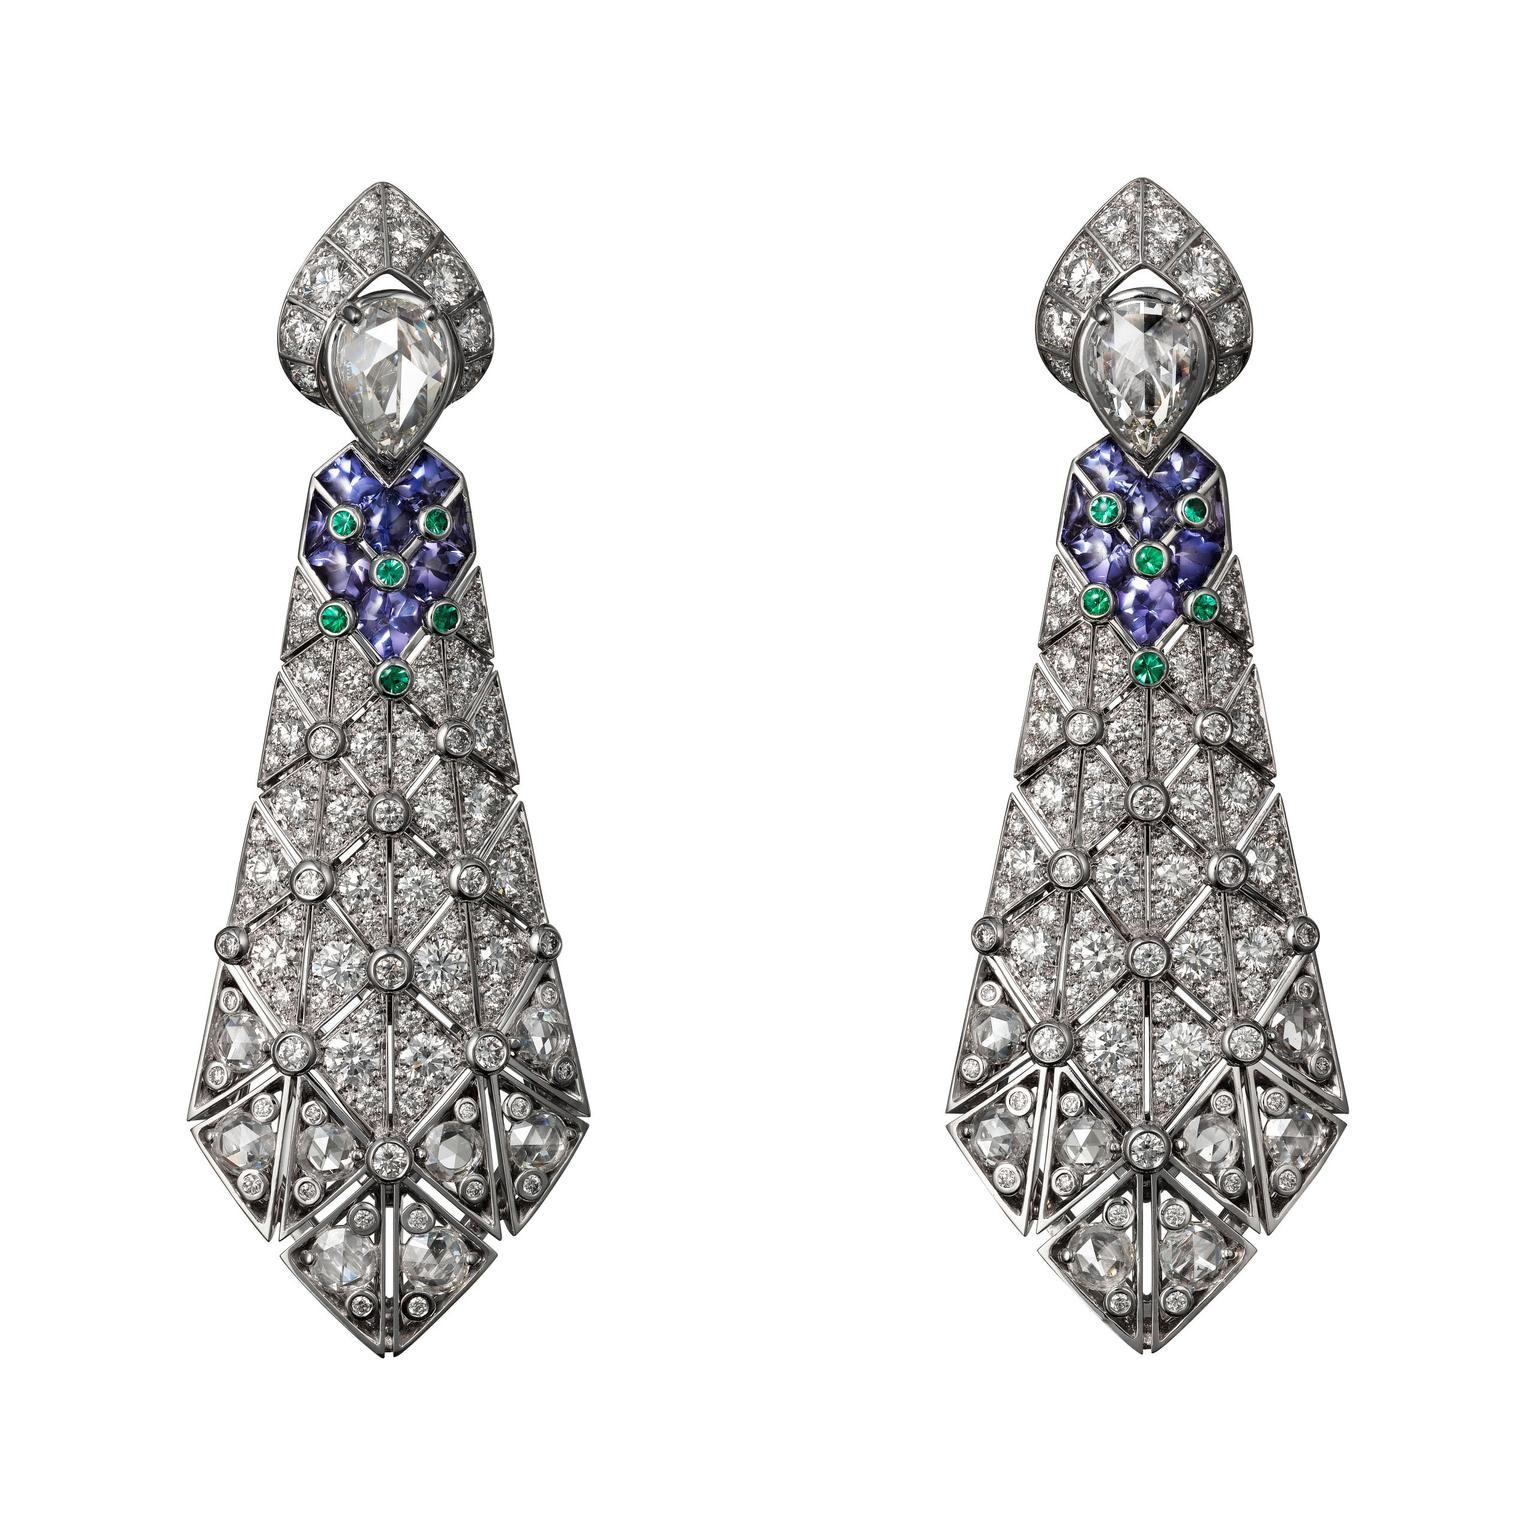 Cartier Étourdissant purple sapphire, emerald and diamond earrings